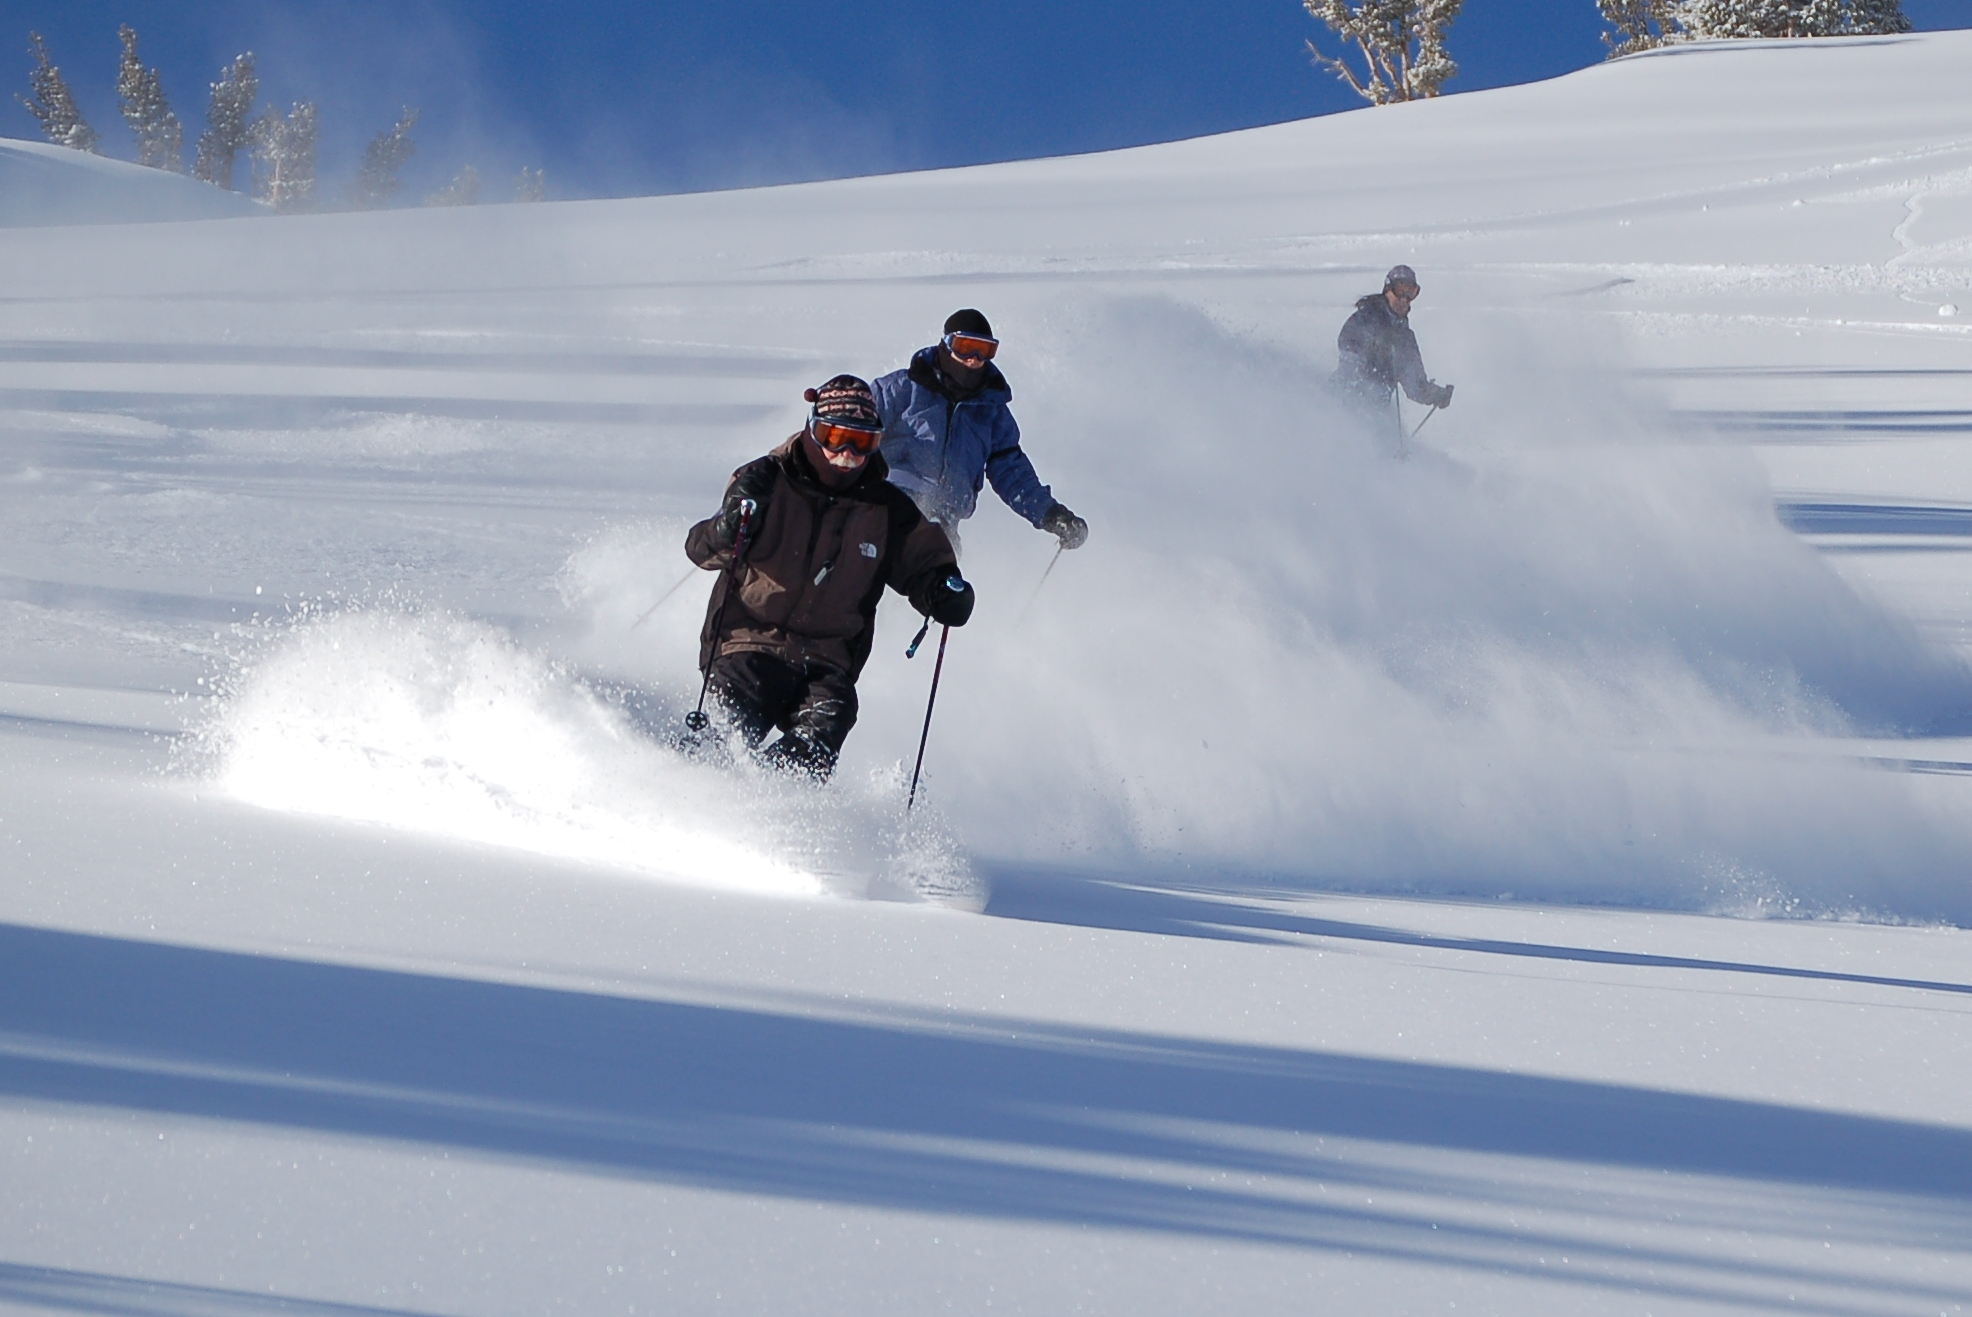 Dec 01, · Since , long before the present Mt. Rose Highway was built, or even chairlifts were constructed, Reno and Washoe County locals have been skiing in the area currently known as Mt. Rose - Ski Tahoe. Mt. Rose Ski Area opened in the season (with North facing runs of Slide Mountain).4/4().